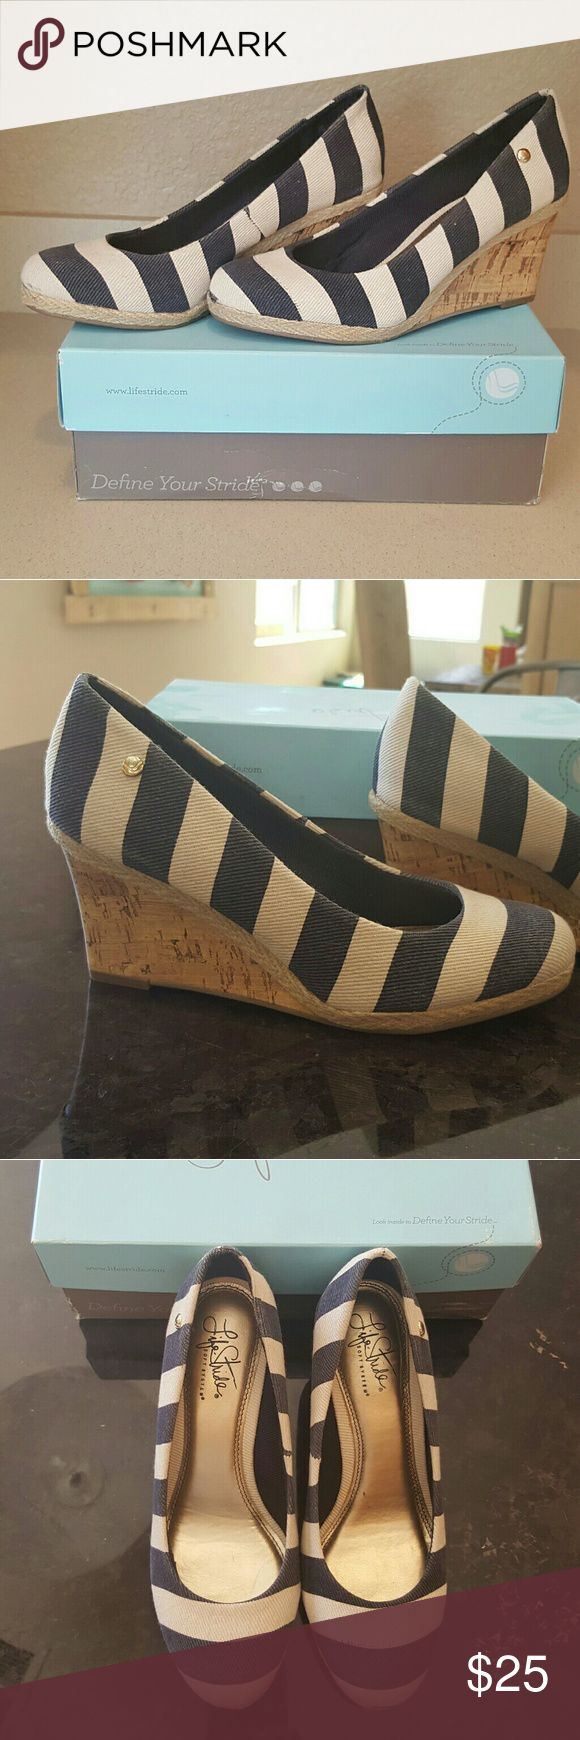 Cork wedge espadrille Shoes Size 7 Navy and cream stiped cork wedges with soft system cushioned soles. So adorable!! Used, worn once or twice. Great condition!! Life Stride Shoes Wedges